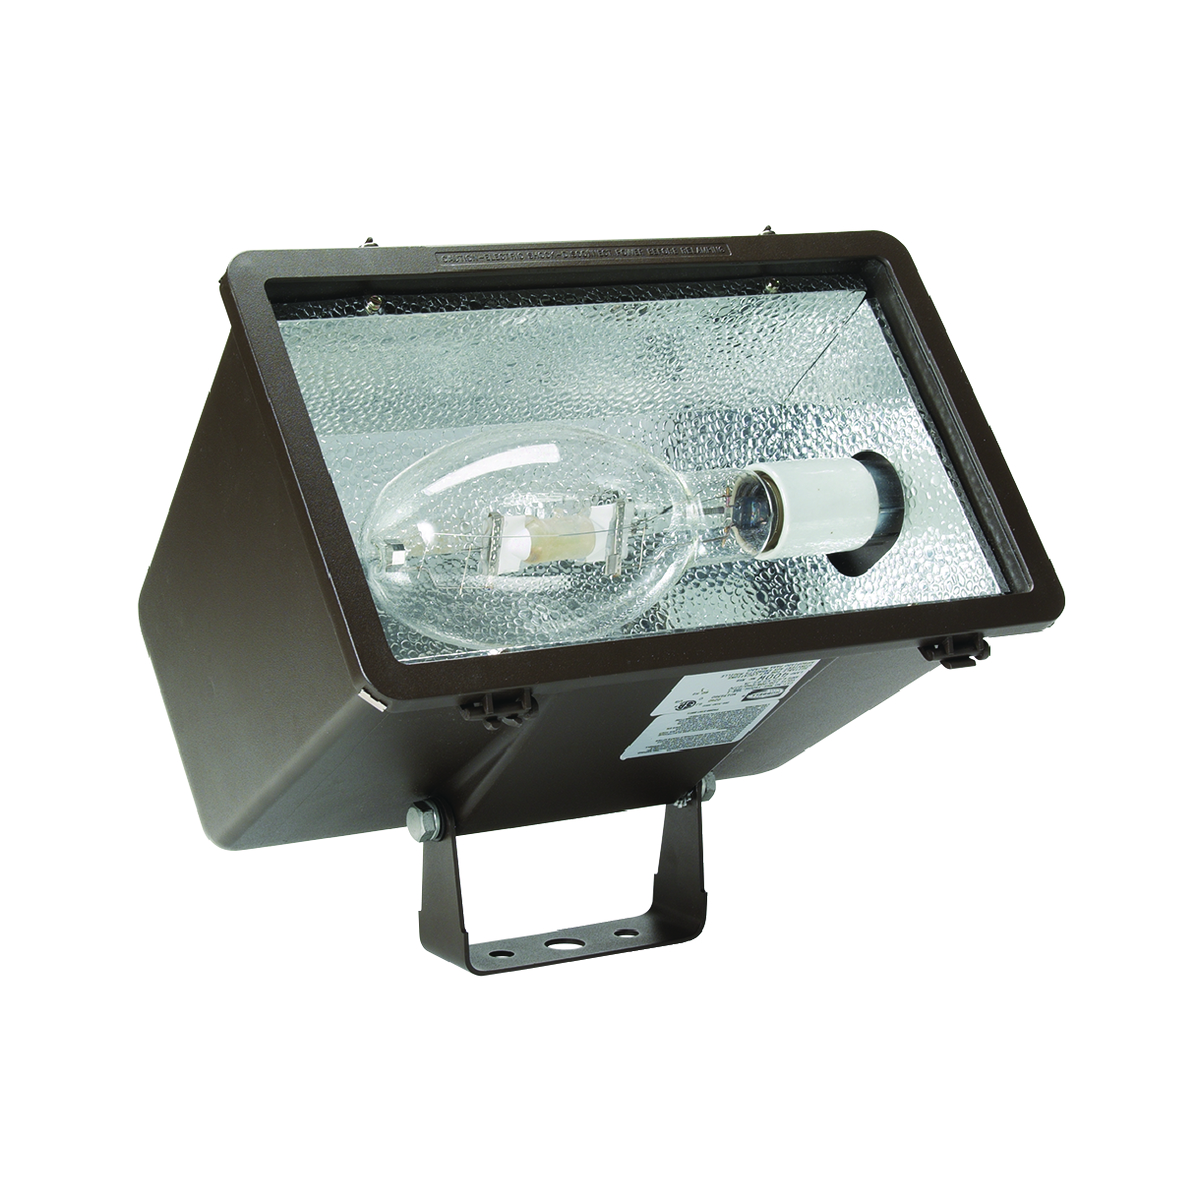 HBLMHS-Y250P8 FLDLGHT 250W PS QTAP WIDE YOKE W/LP BRZ, HUBBELL LIGHTING